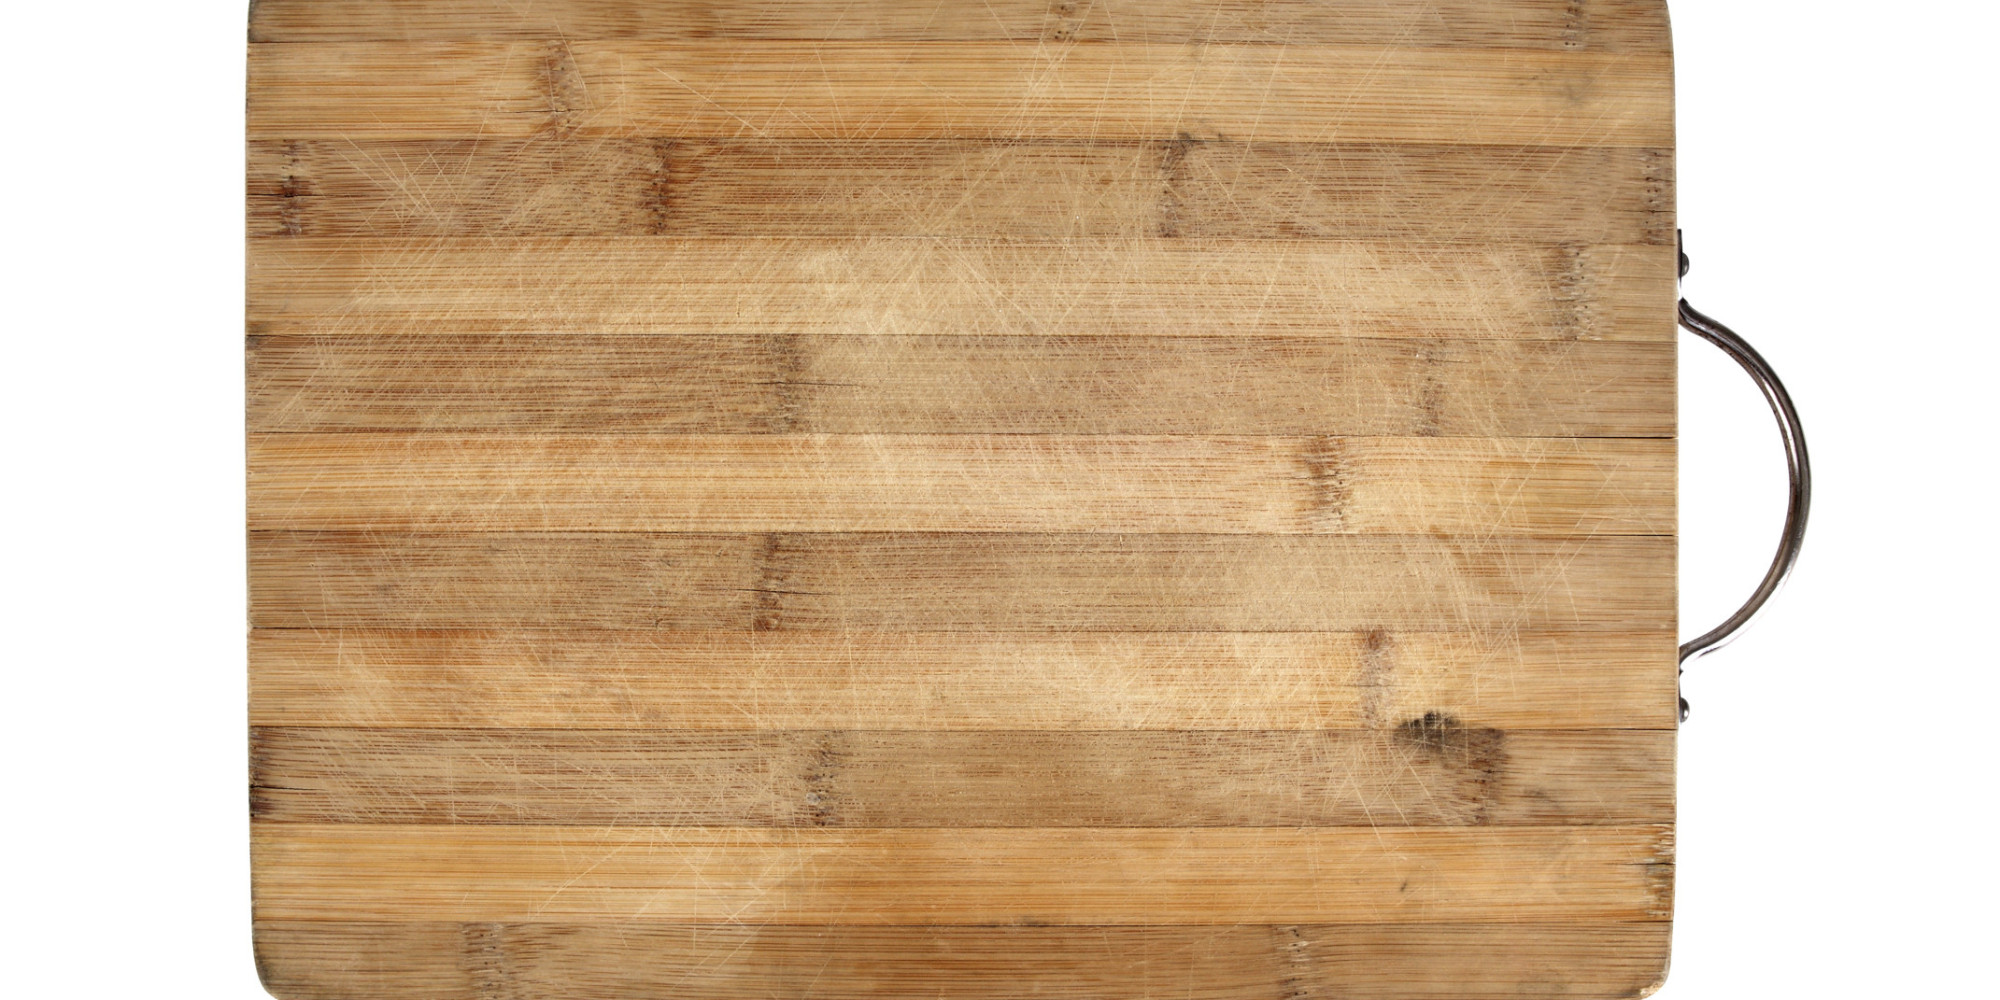 Wood Or Plastic Cutting Boards: Which Is Better? | HuffPost